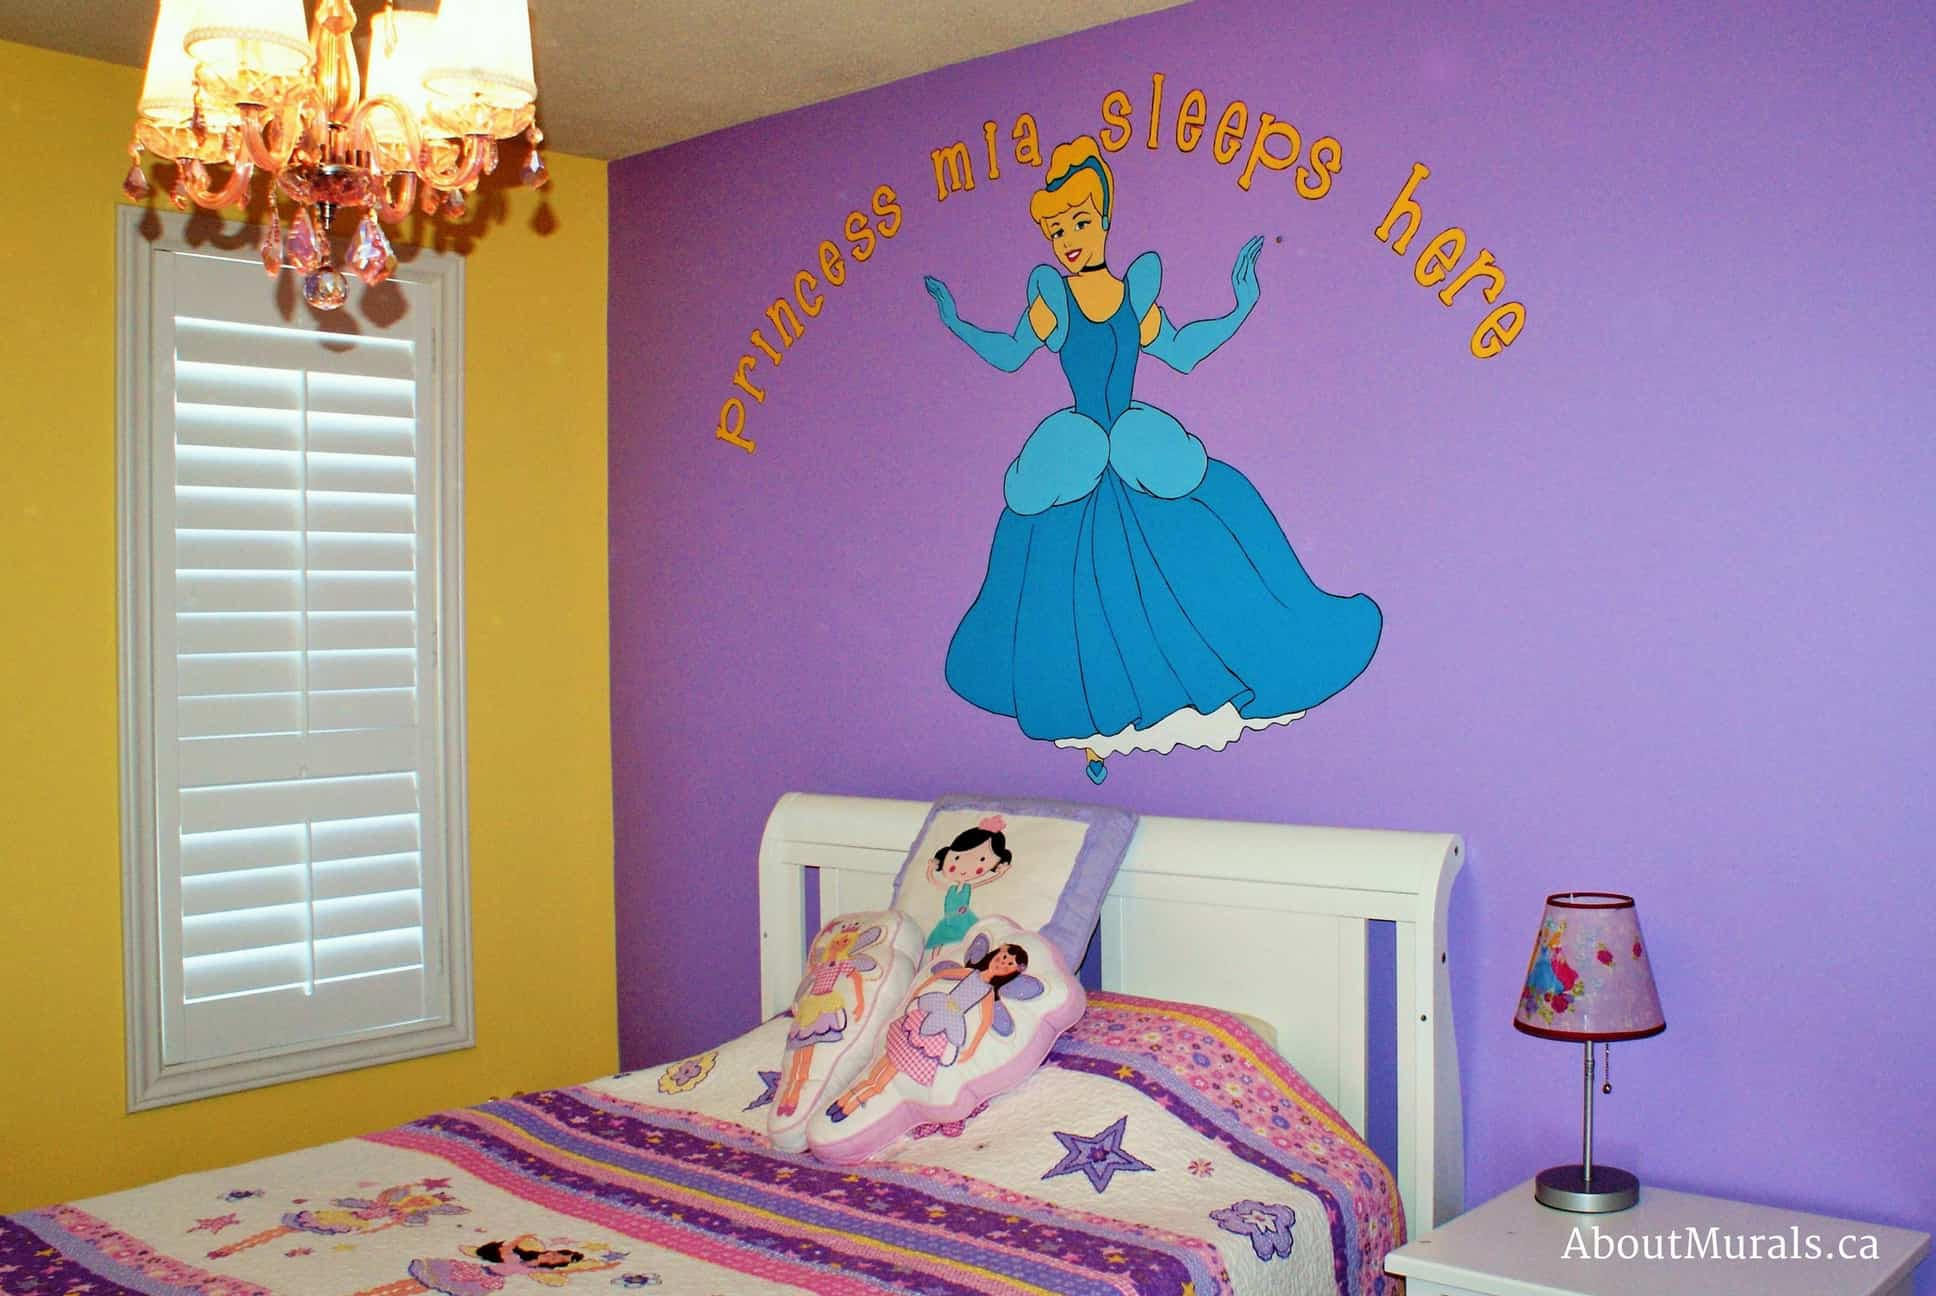 A kids wall mural featuring Cinderella over a girl's bed